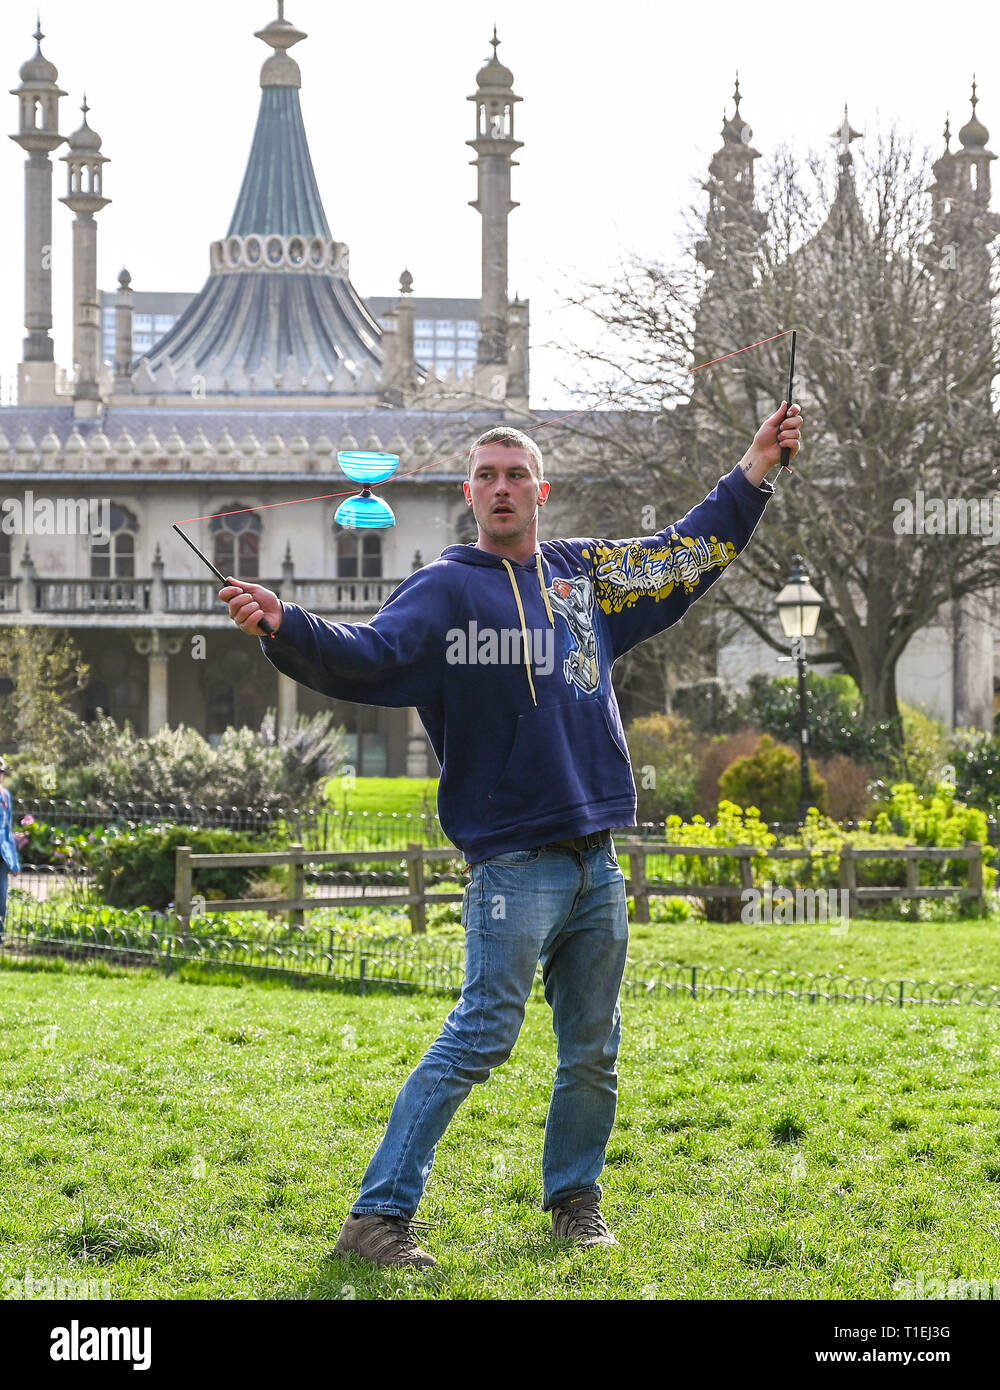 Brighton, UK. 26th Mar, 2019. Shane McQuire hones his diablo skills by Brightons Royal Pavilion on a lovely sunny Spring day as the weather is forecast to be warm with more sunshine throughout Britain over the next few days Credit: Simon Dack/Alamy Live News Stock Photo